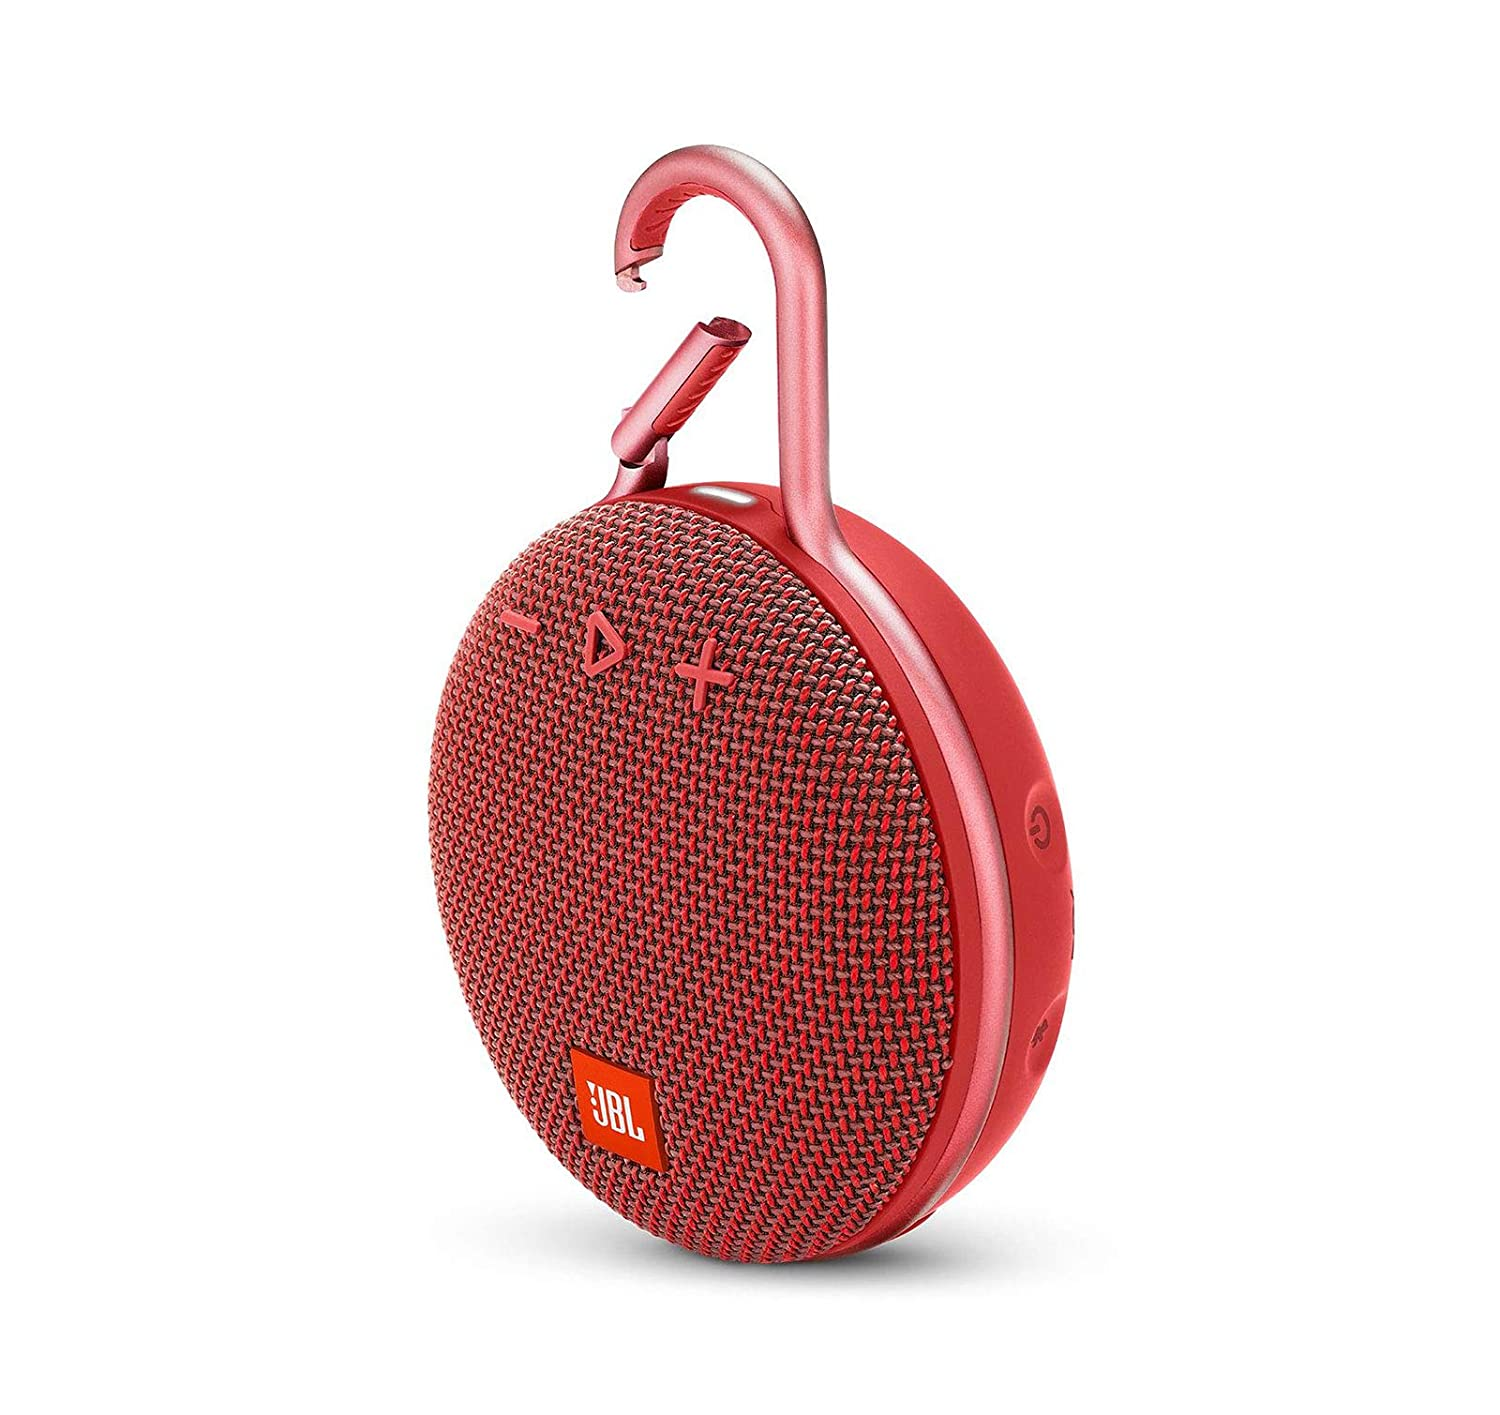 JBL Clip 3 Waterproof Portable Bluetooth Speaker - Red